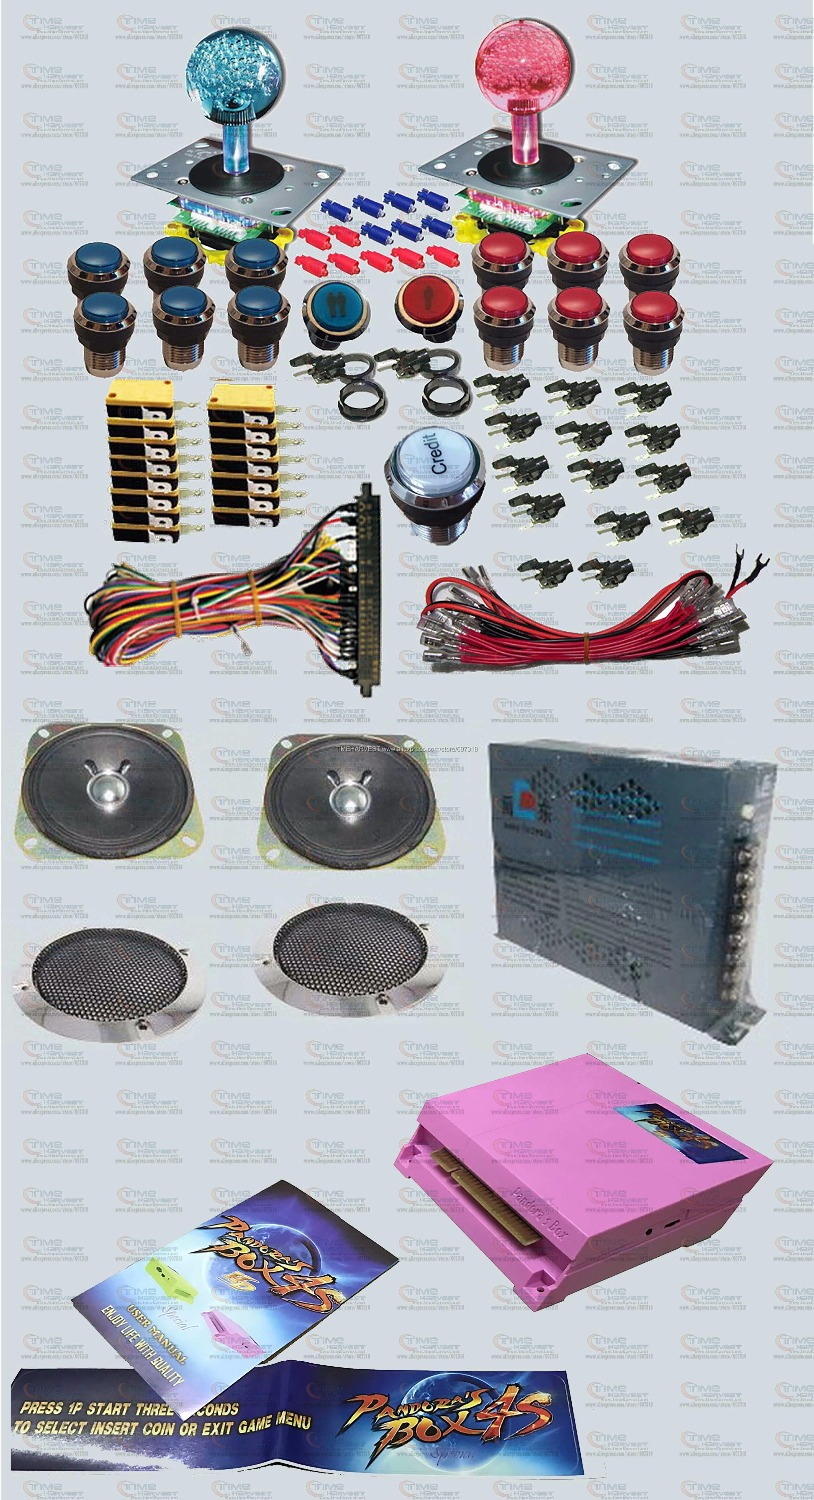 Arcade parts Bundles kit With HDMI Pandora Box 4S games LED illuminated Joystick Chrome LED button Microswitch Jamma Harness men s fashion round collar pullover printed t shirt